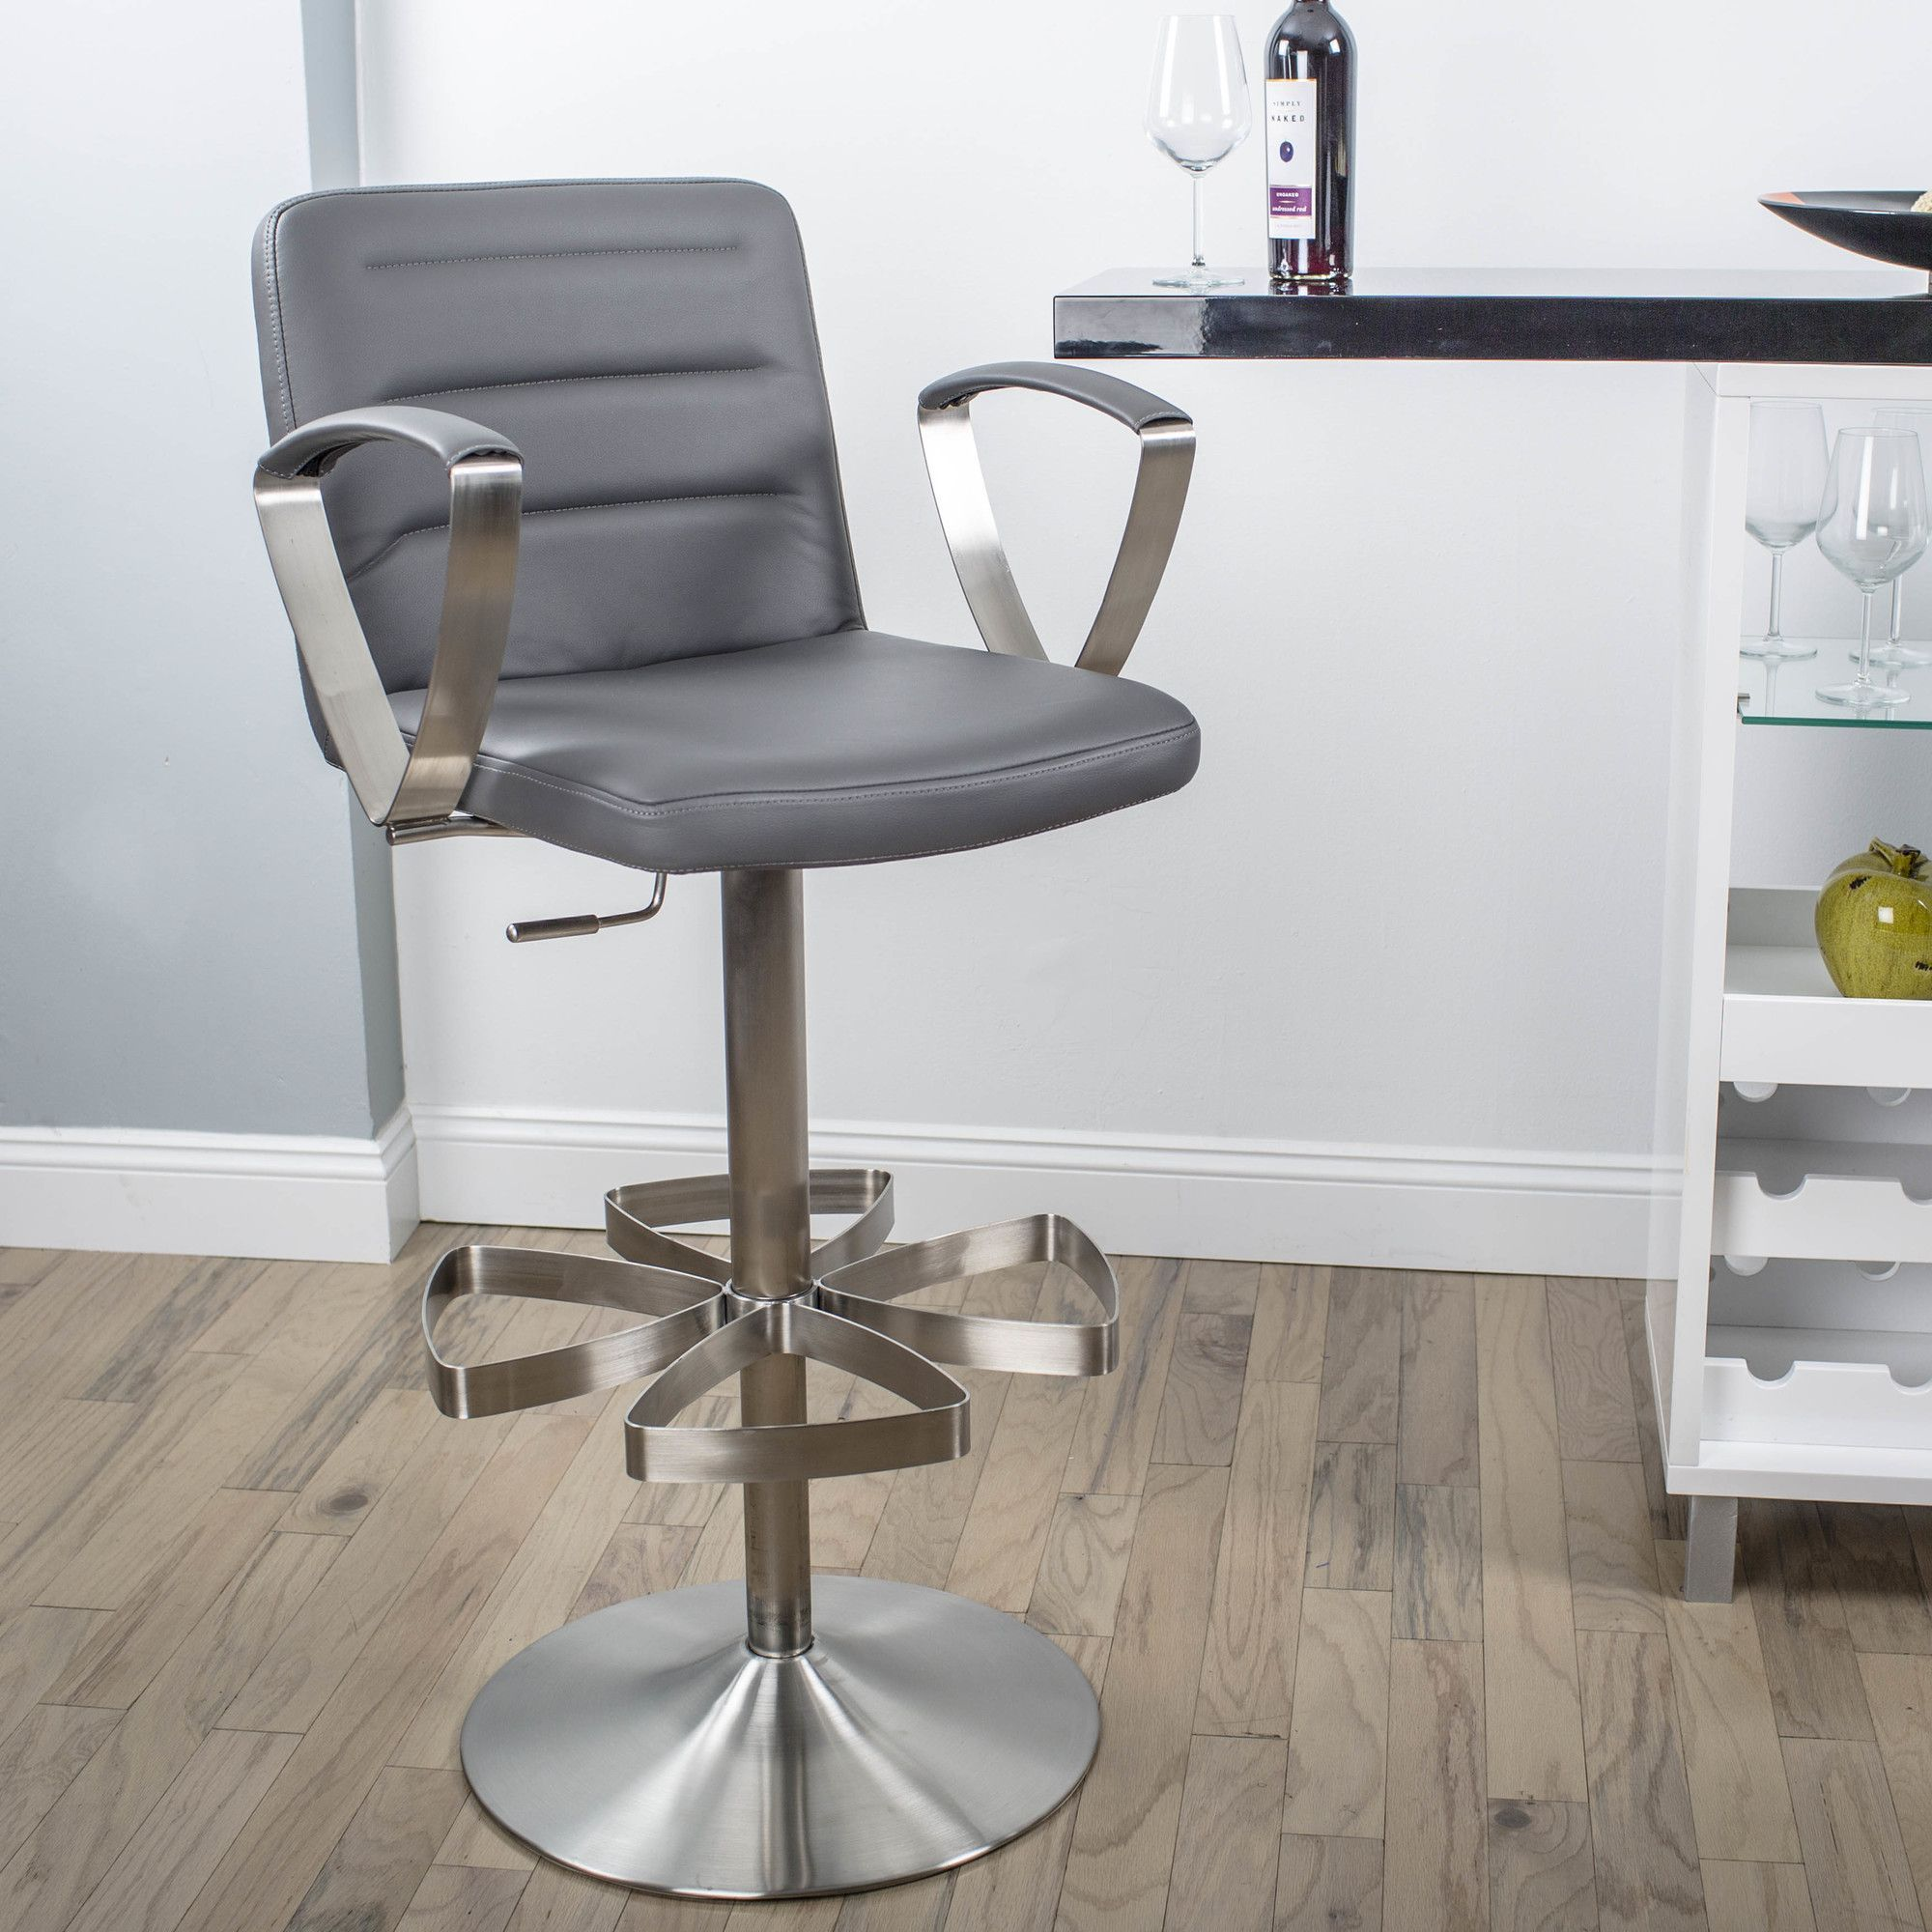 Rexx Adjustable Height Swivel Bar Stool With Cushion Adjustable Bar Stools Bar Stools Adjustable Stool